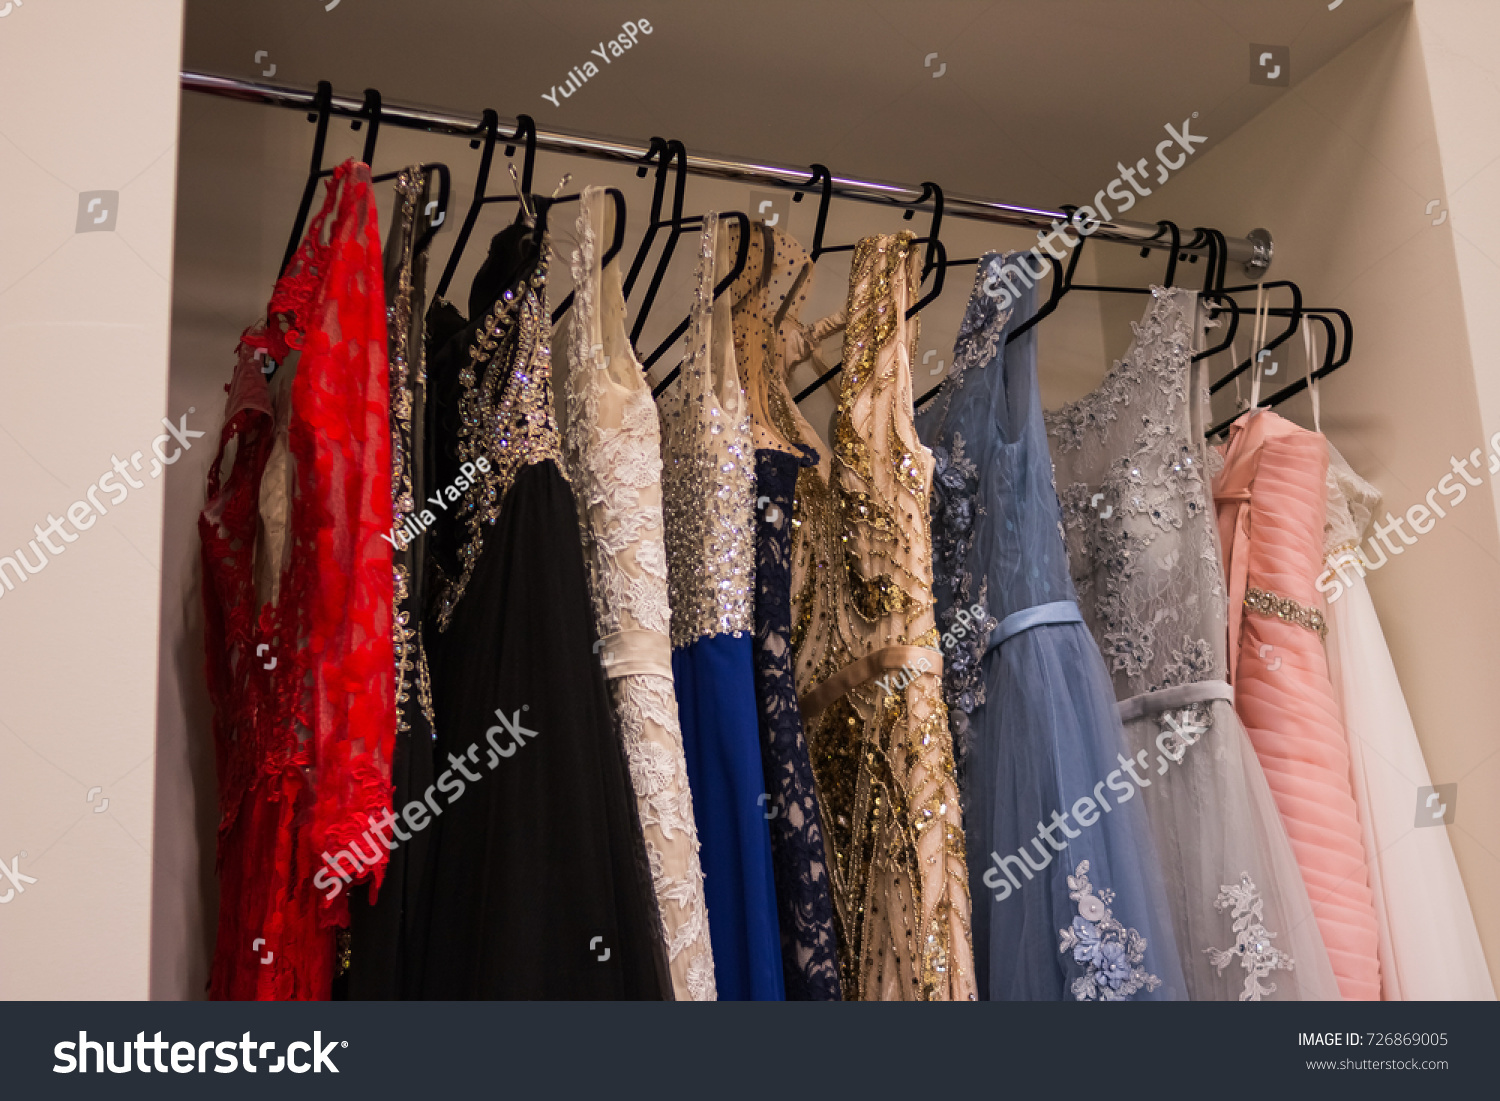 Many Ladies Evening Gown Long Dresses On Hanger In The Dress Rent Shop For Wedding